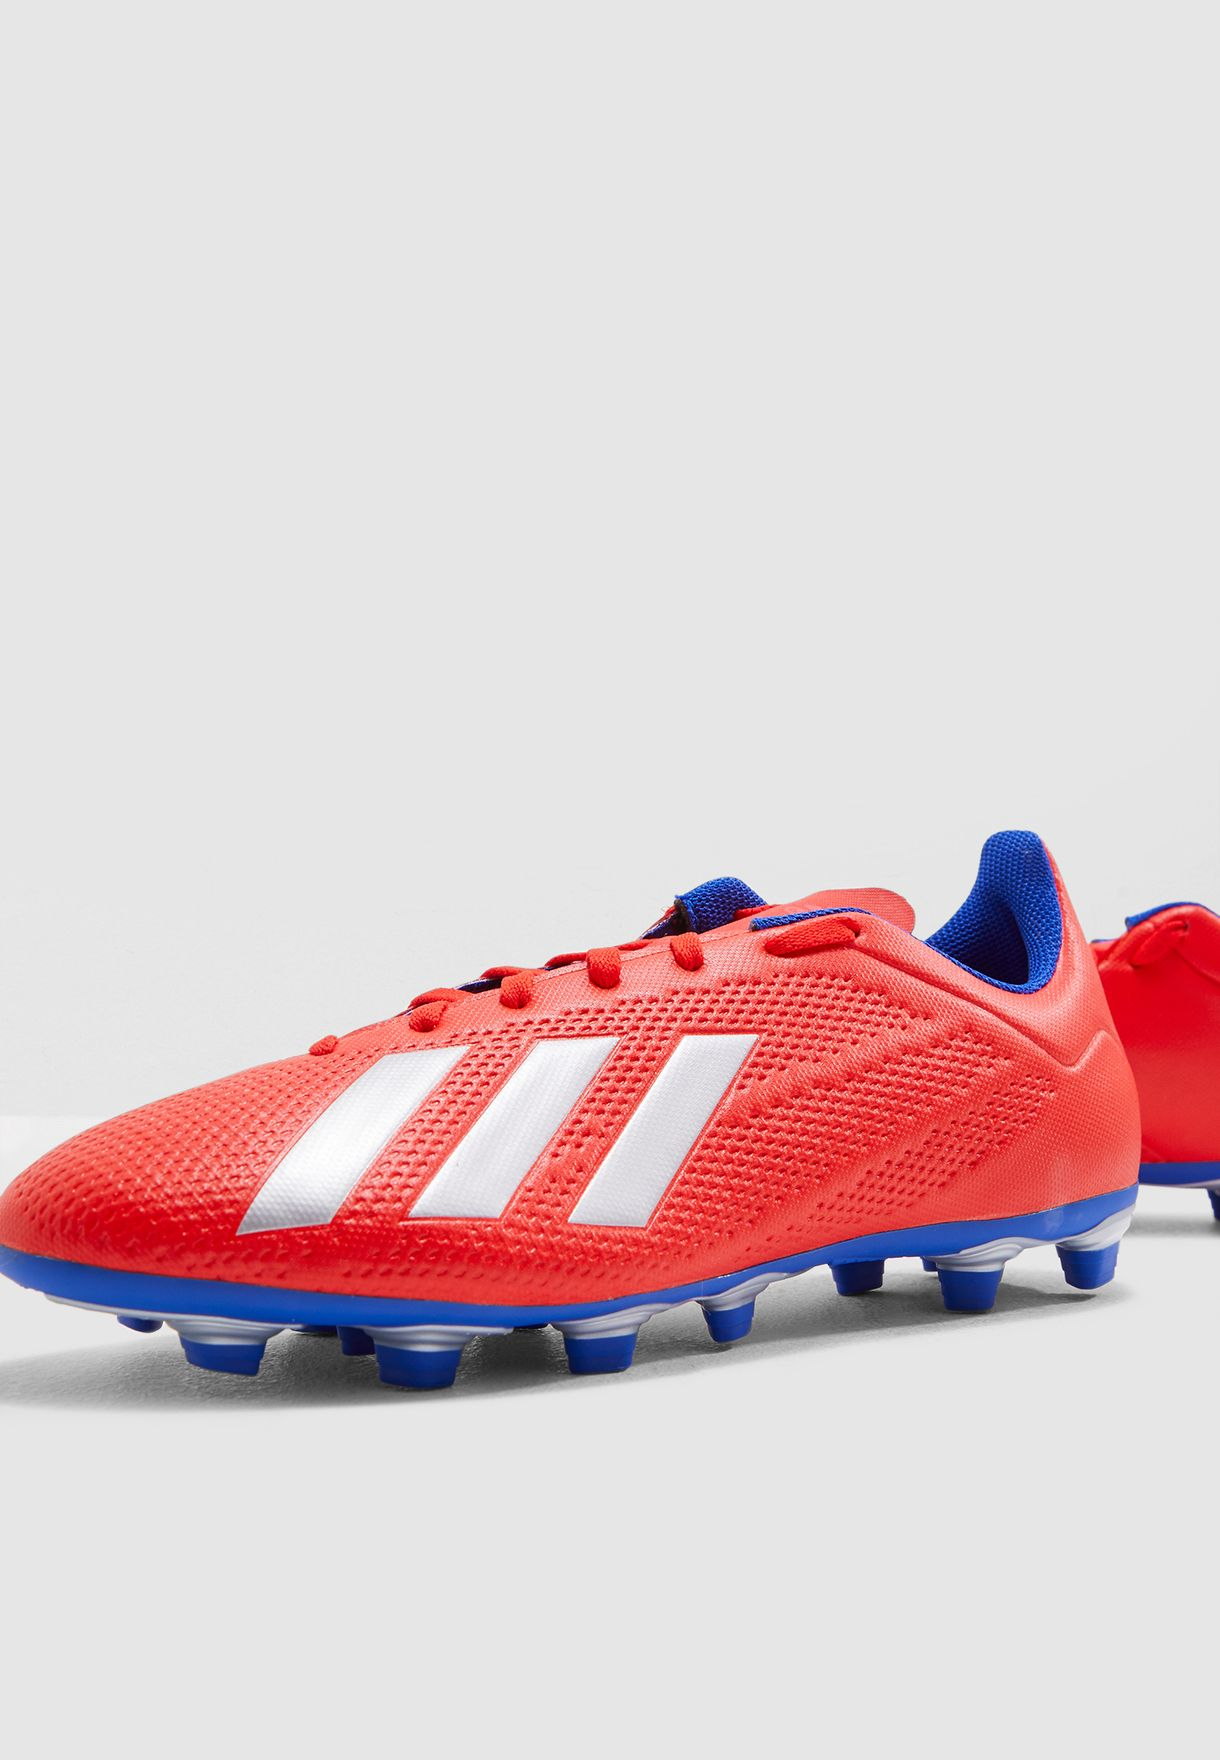 new arrival 10c1a 737fc Shop adidas red X 18.4 FG BB9376 for Men in UAE - 14448SH74FCP